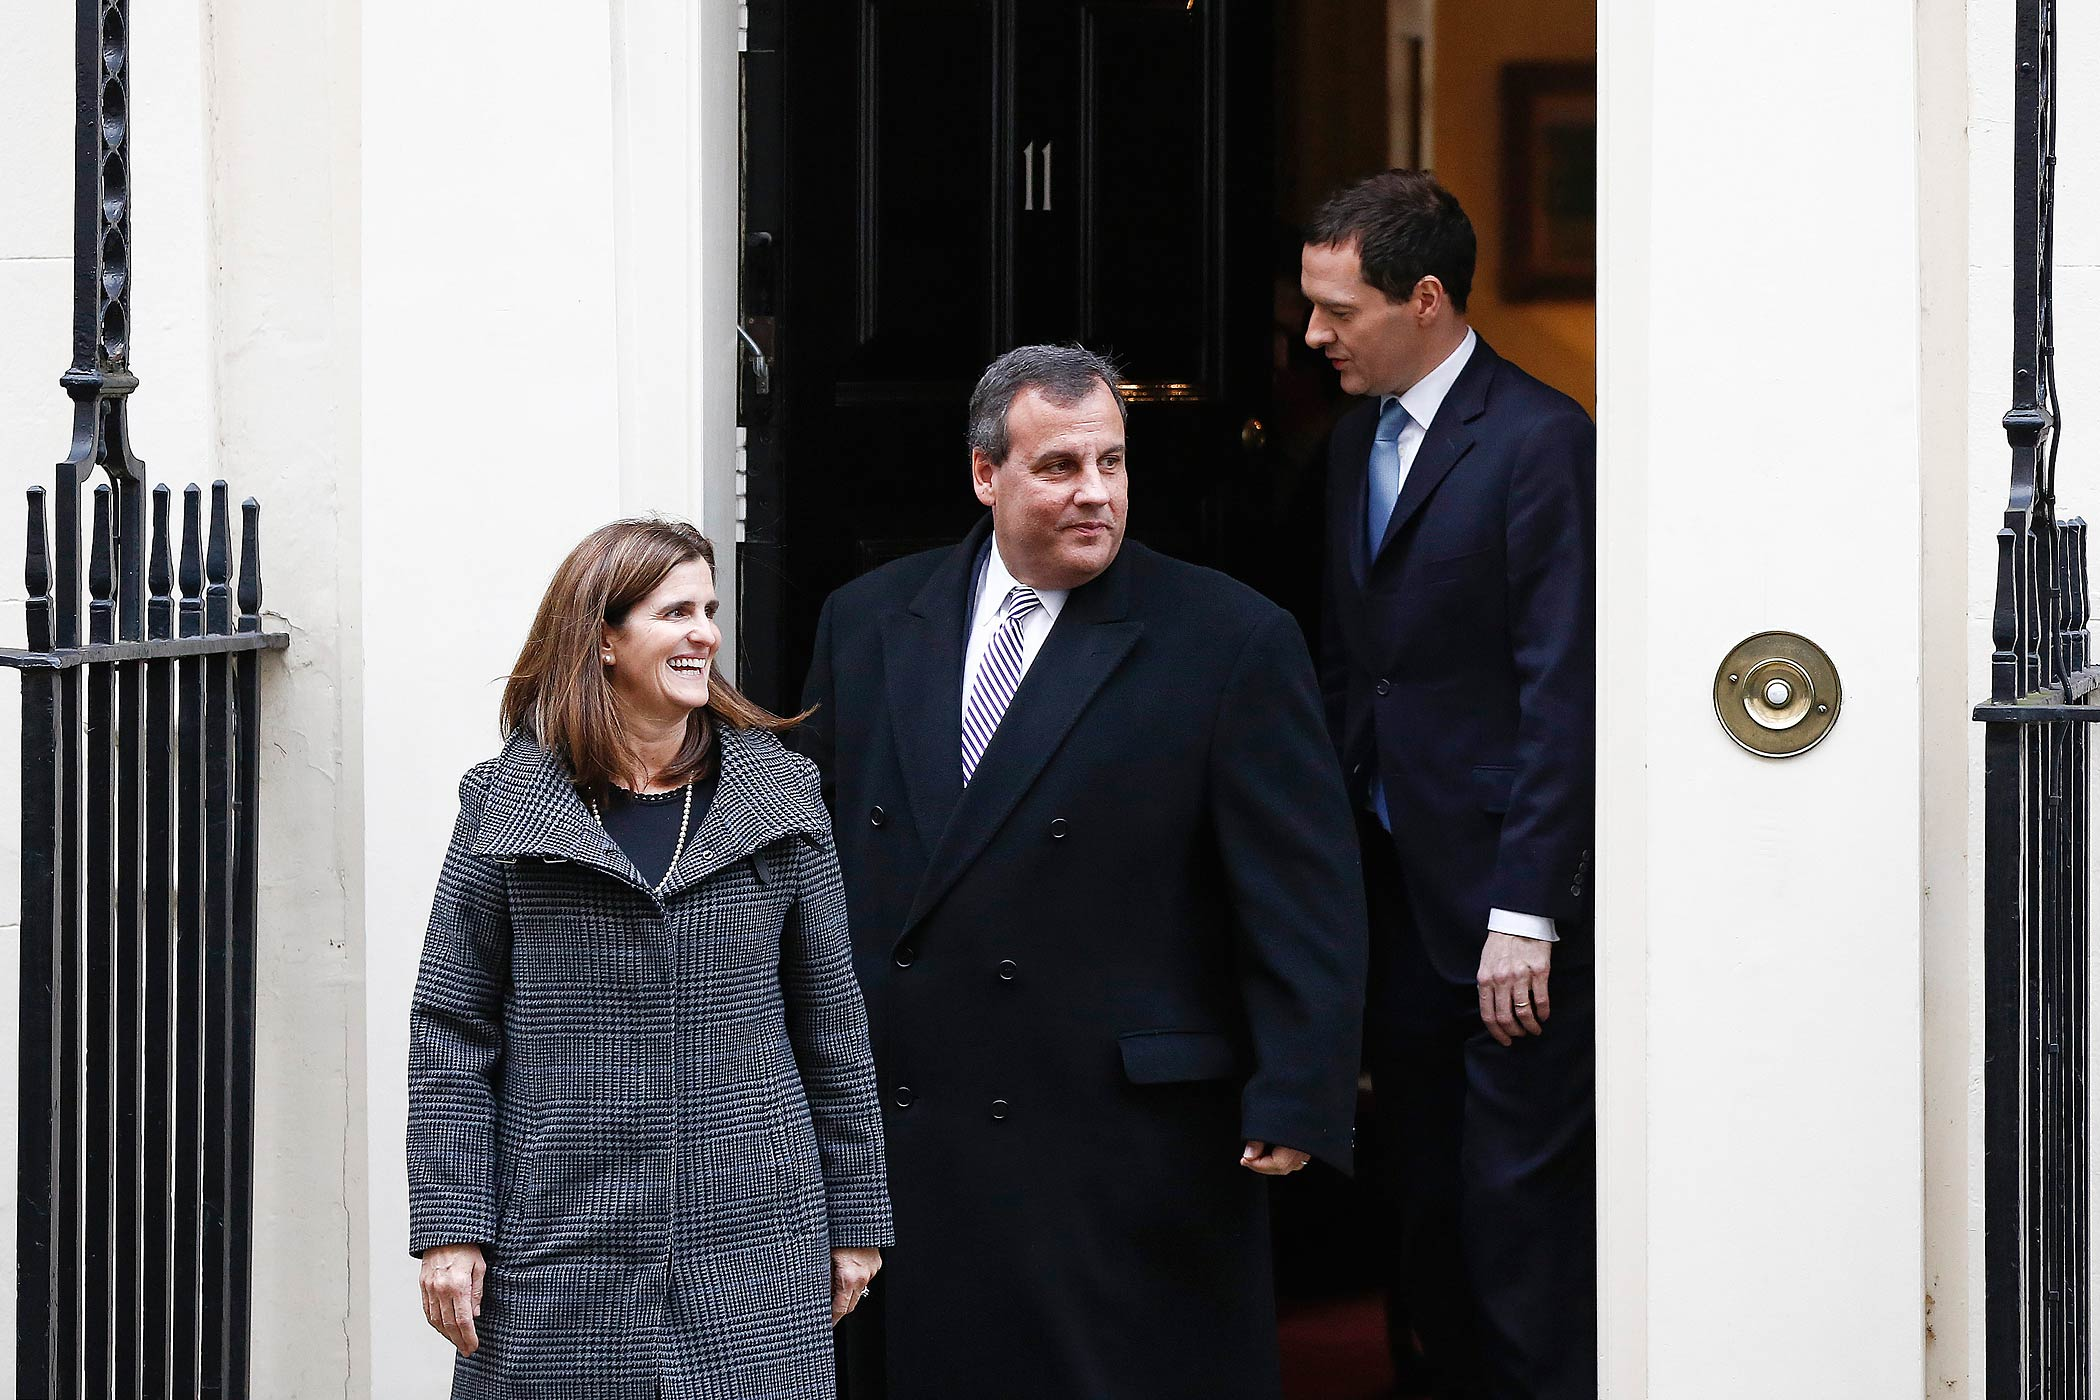 British Chancellor of the Exchequer George Osborne, right, follows Chris Christie, governor of New Jersey, center, and his wife Mary Pat Christie, out of 11 Downing Street following their meeting in London, U.K., on Feb. 3, 2015.